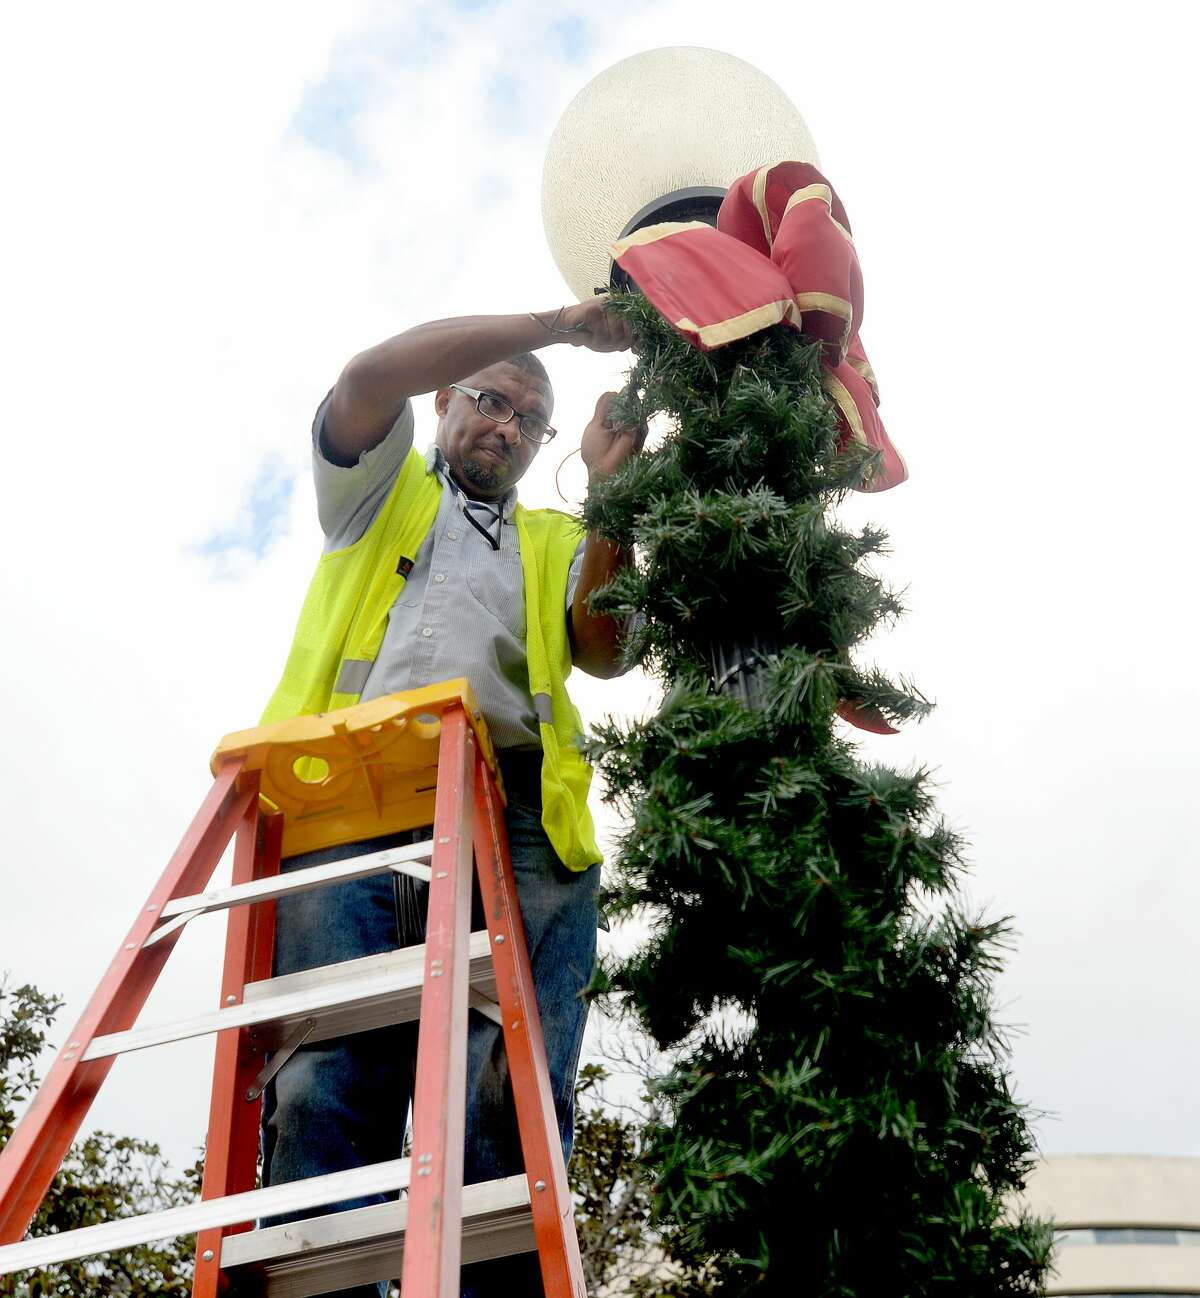 City of Beaumont workers Tim Cole and Steve Moore (not pictured) team up to decorate the light poles lining Main Street as holiday decorating throughout downtown got underway Monday. Throughout the week, city workers will hang banners, more lights and garland, and Thursday put up the city Christmas tree at the Event Centre. Photo taken Monday, November 9, 2020 Kim Brent/The Enterprise